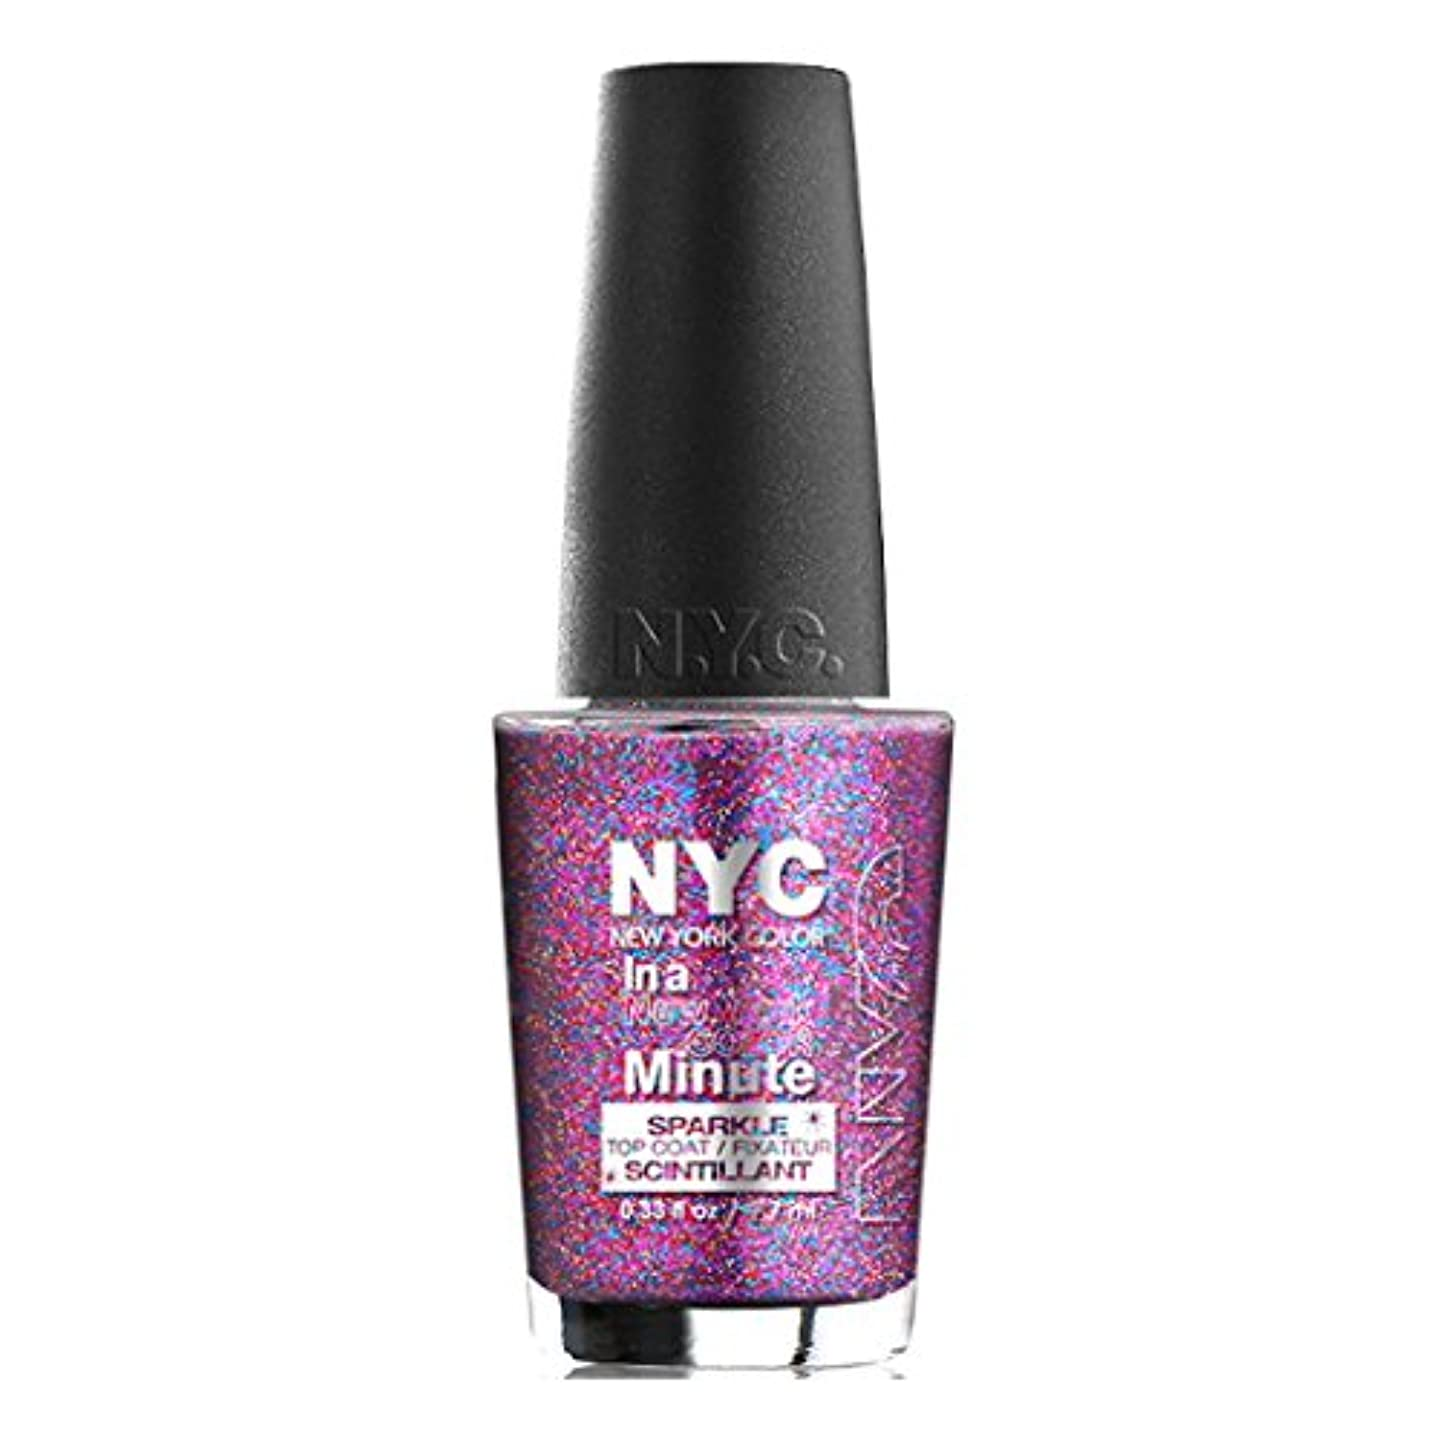 郵便酔って死の顎(3 Pack) NYC In A New York Color Minute Sparkle Top Coat - Big City Dazzle (並行輸入品)